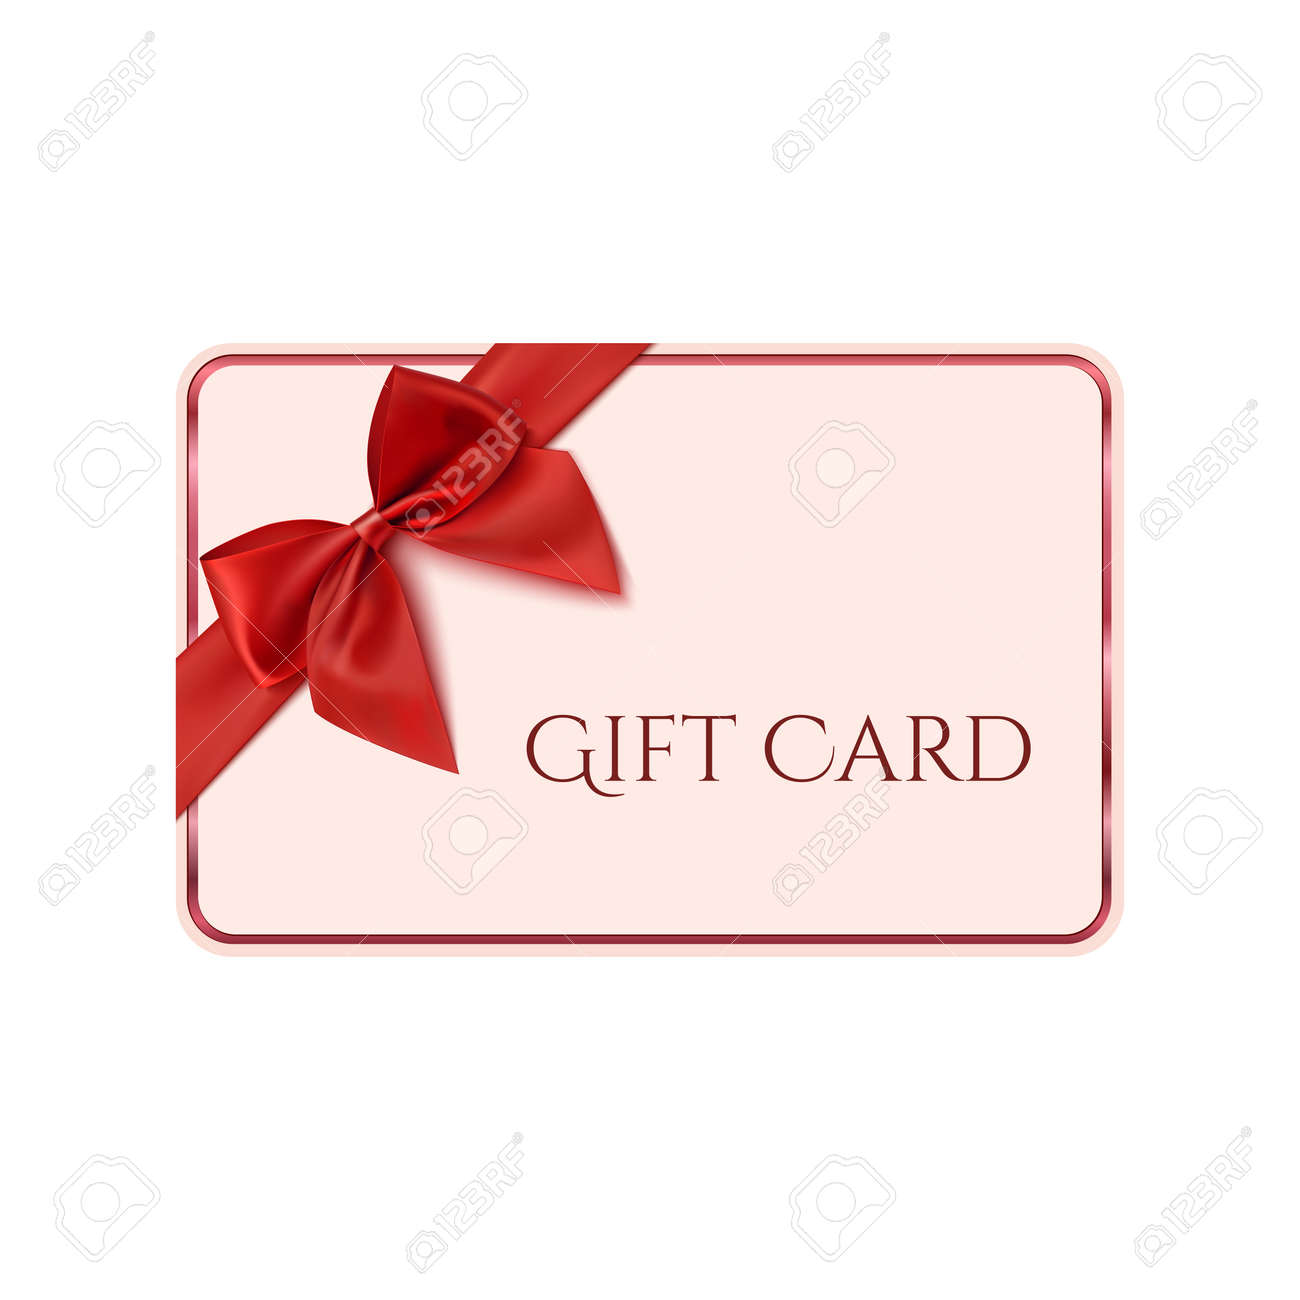 Gift Card Template With Red Ribbon And A Bow Vector Illustration